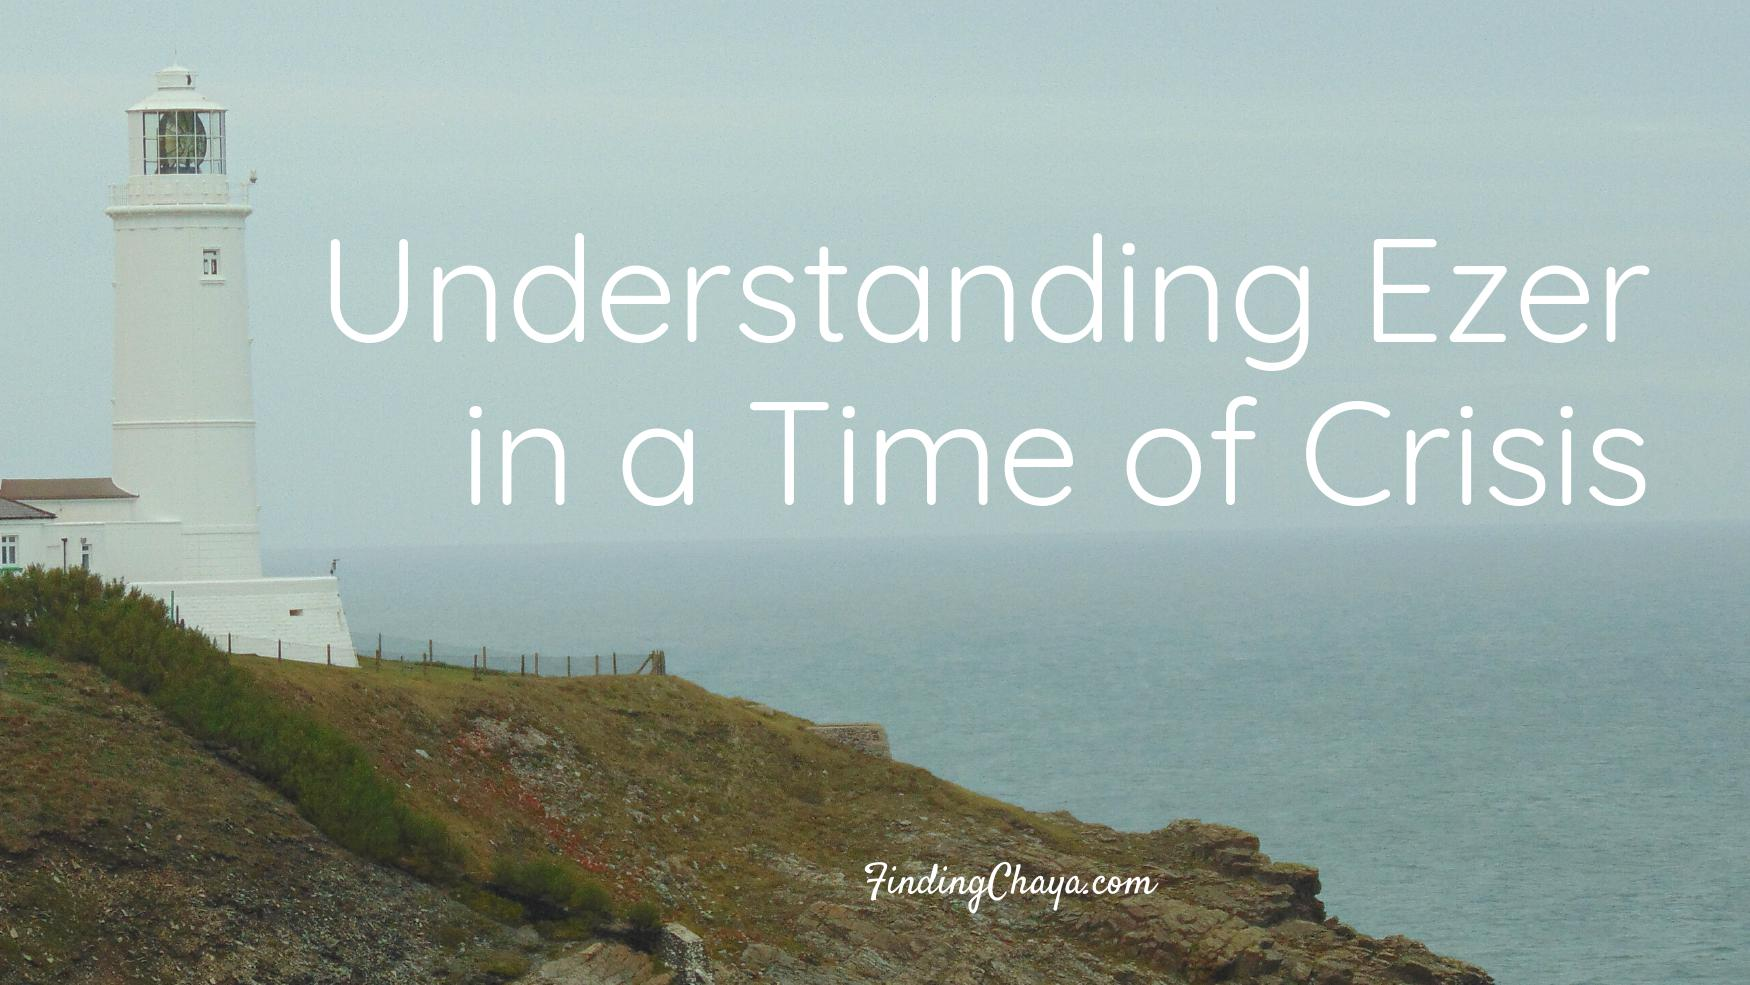 Understanding ezer in a time of crisis